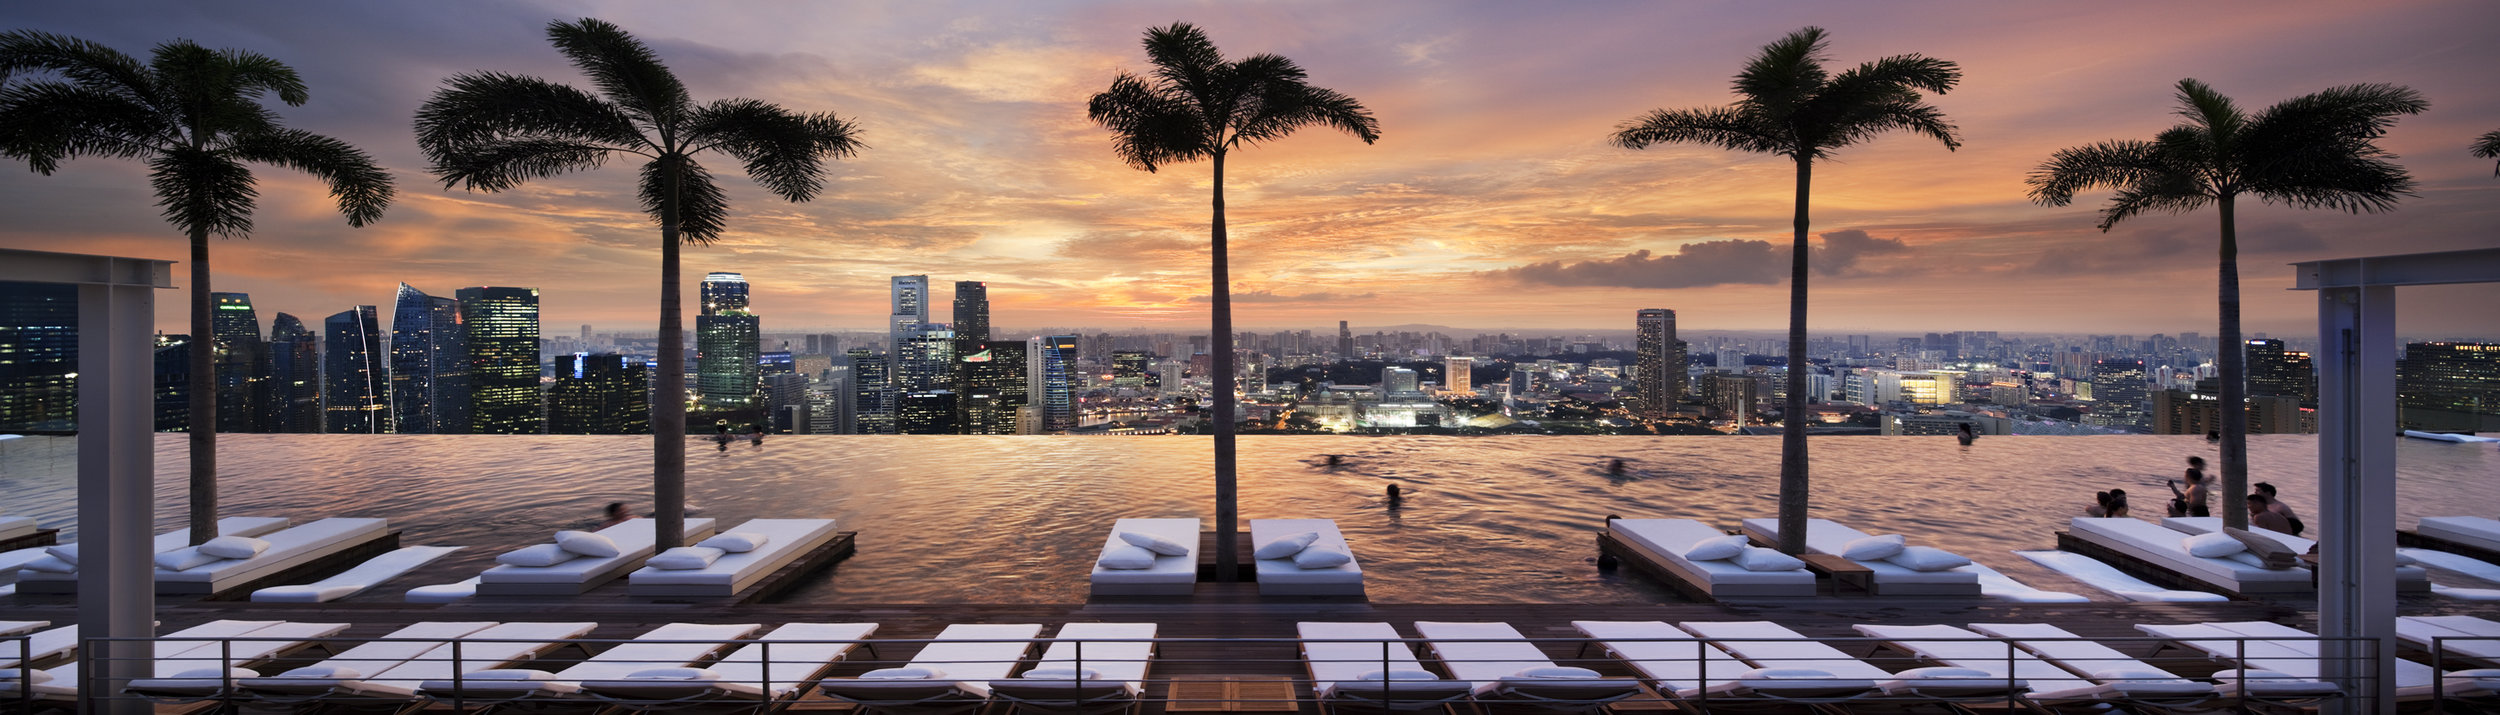 Mind blowing views from the pool atop Marina Bay Sands, Singapore